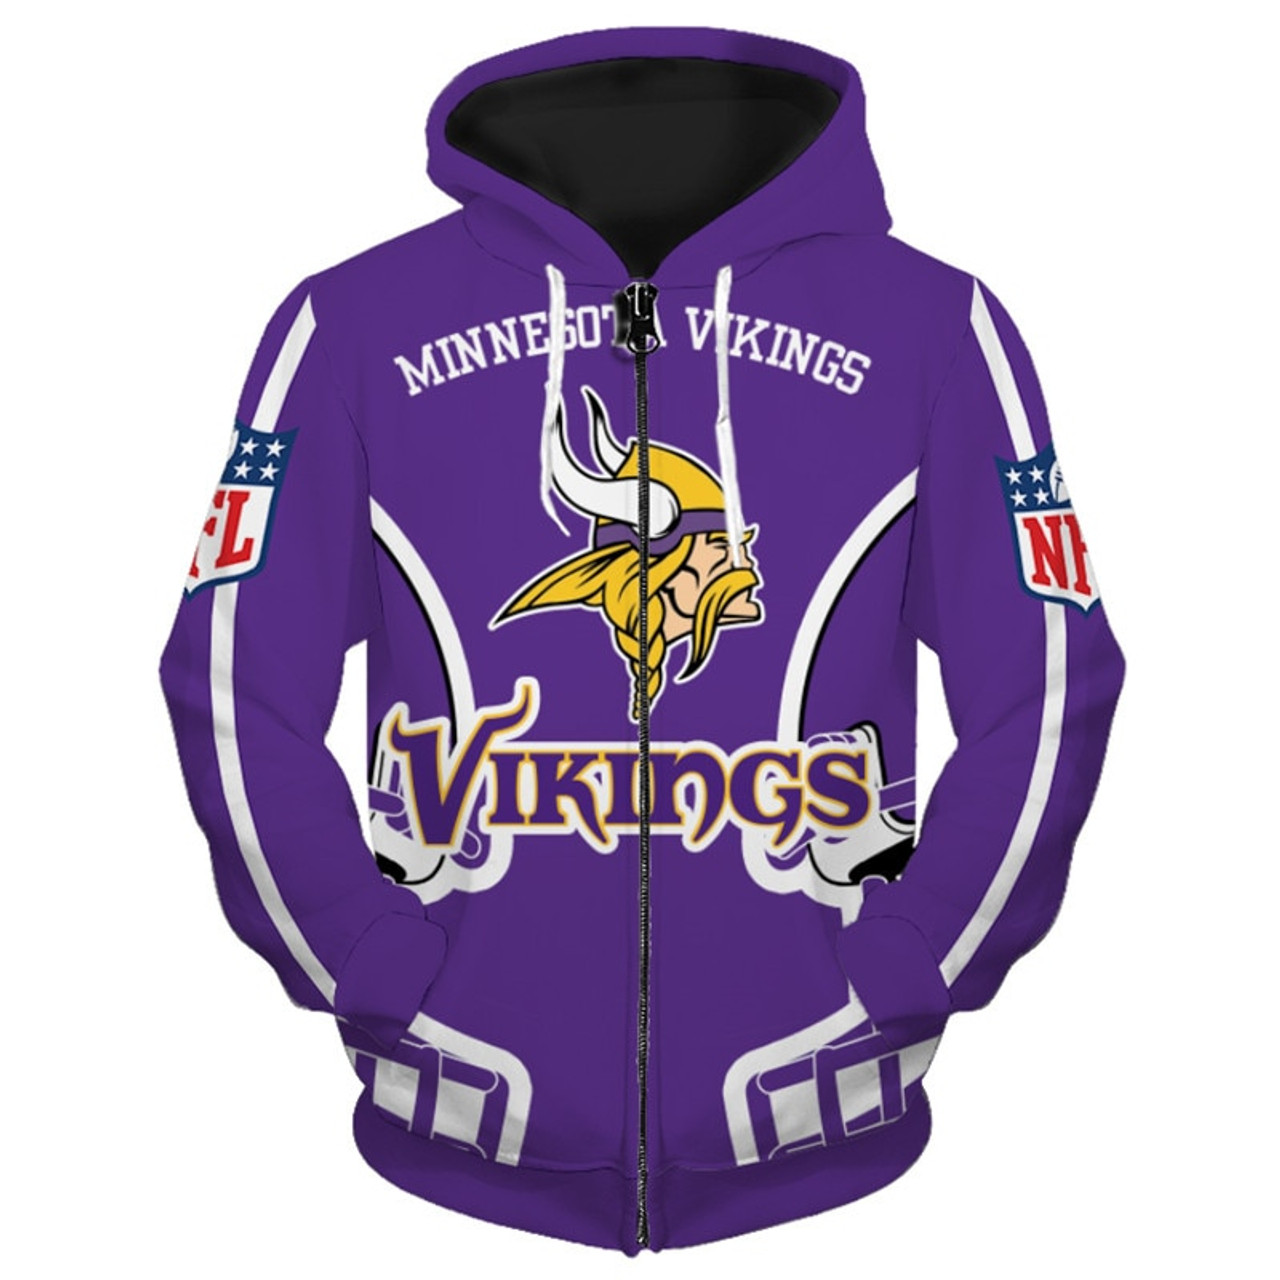 b54aadb8 **(OFFICIALLY-LICENSED-N.F.L.MINNESOTA-VIKINGS-TEAM-ZIPPERED-HOODIES/NICE-CUSTOM-3D-GRAPHIC-PRINTED-DOUBLE-SIDED-ALL-OVER-OFFICIAL-VIKINGS-LOGOS,IN-VI...